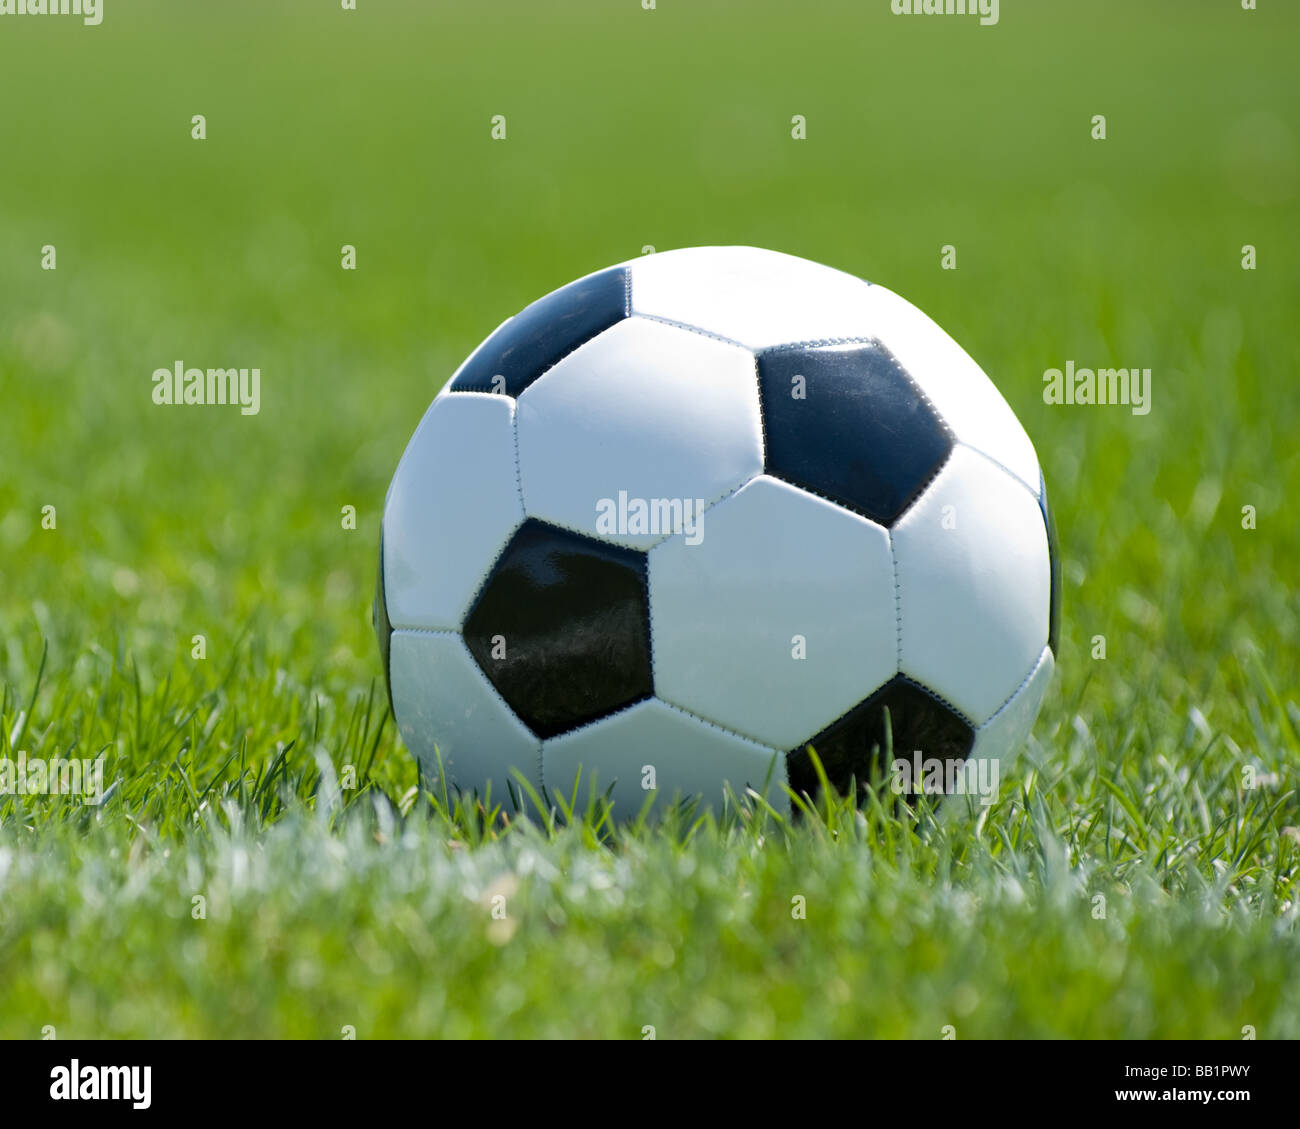 Soccer ball in the corner pitch area - Stock Image